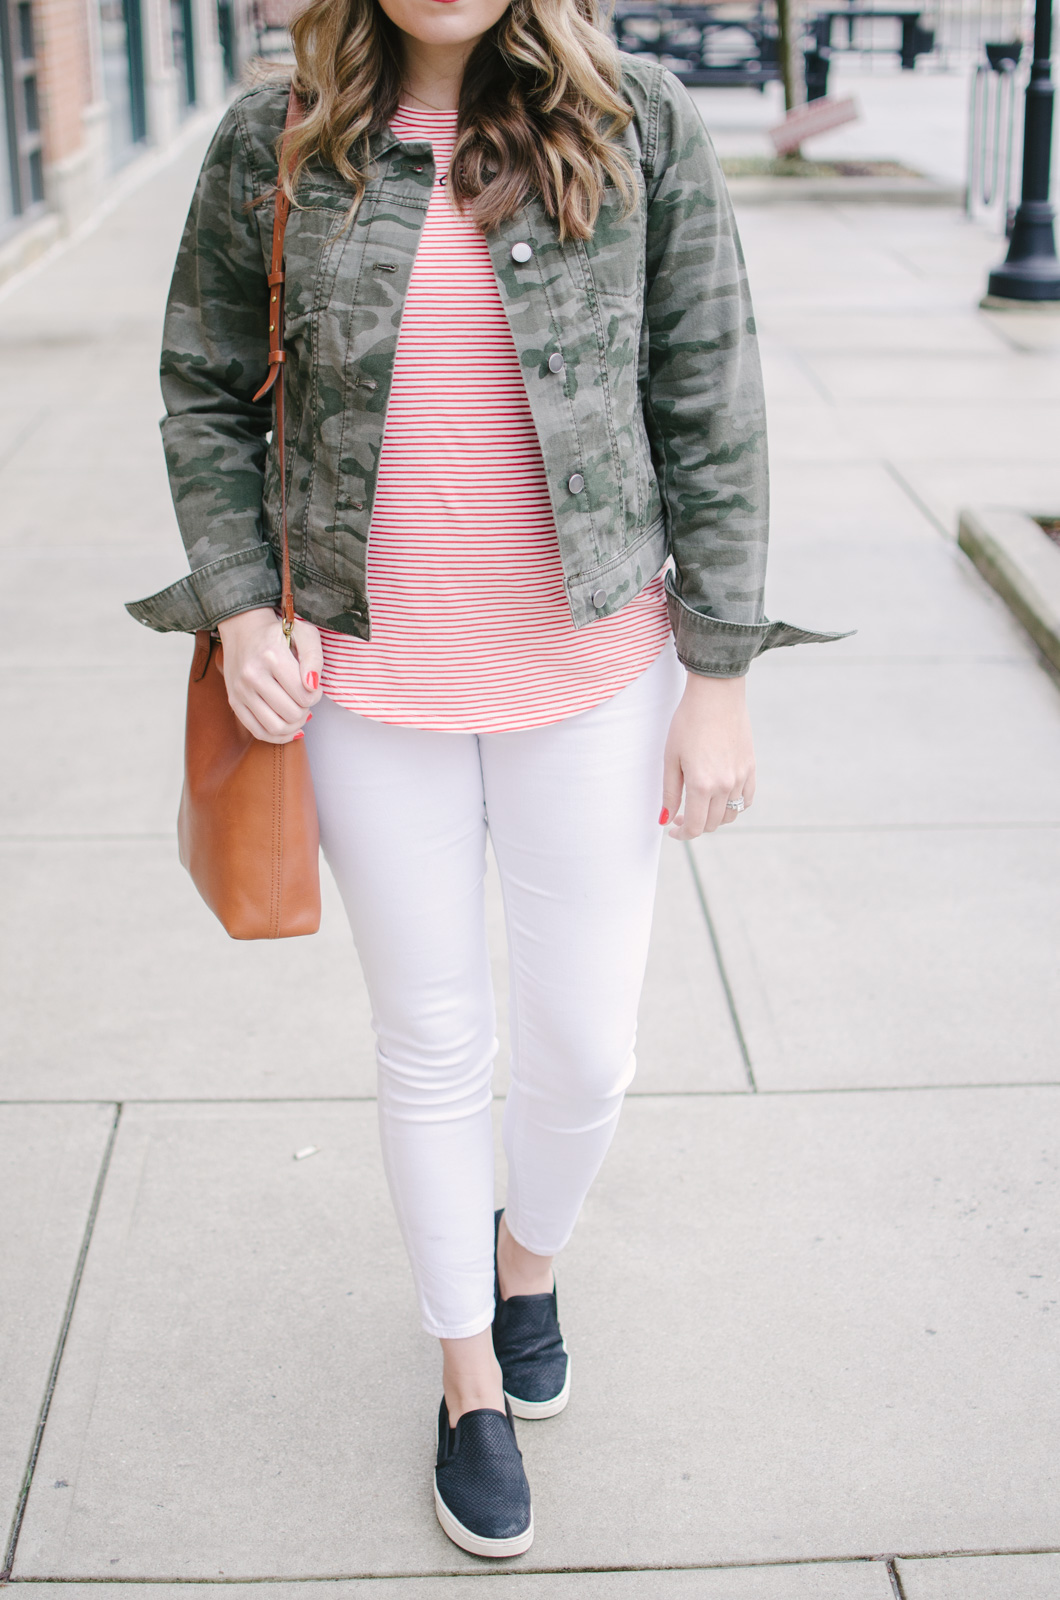 spring outfit idea - camo and stripes spring | See more cute spring outfits at bylaurenm.com!